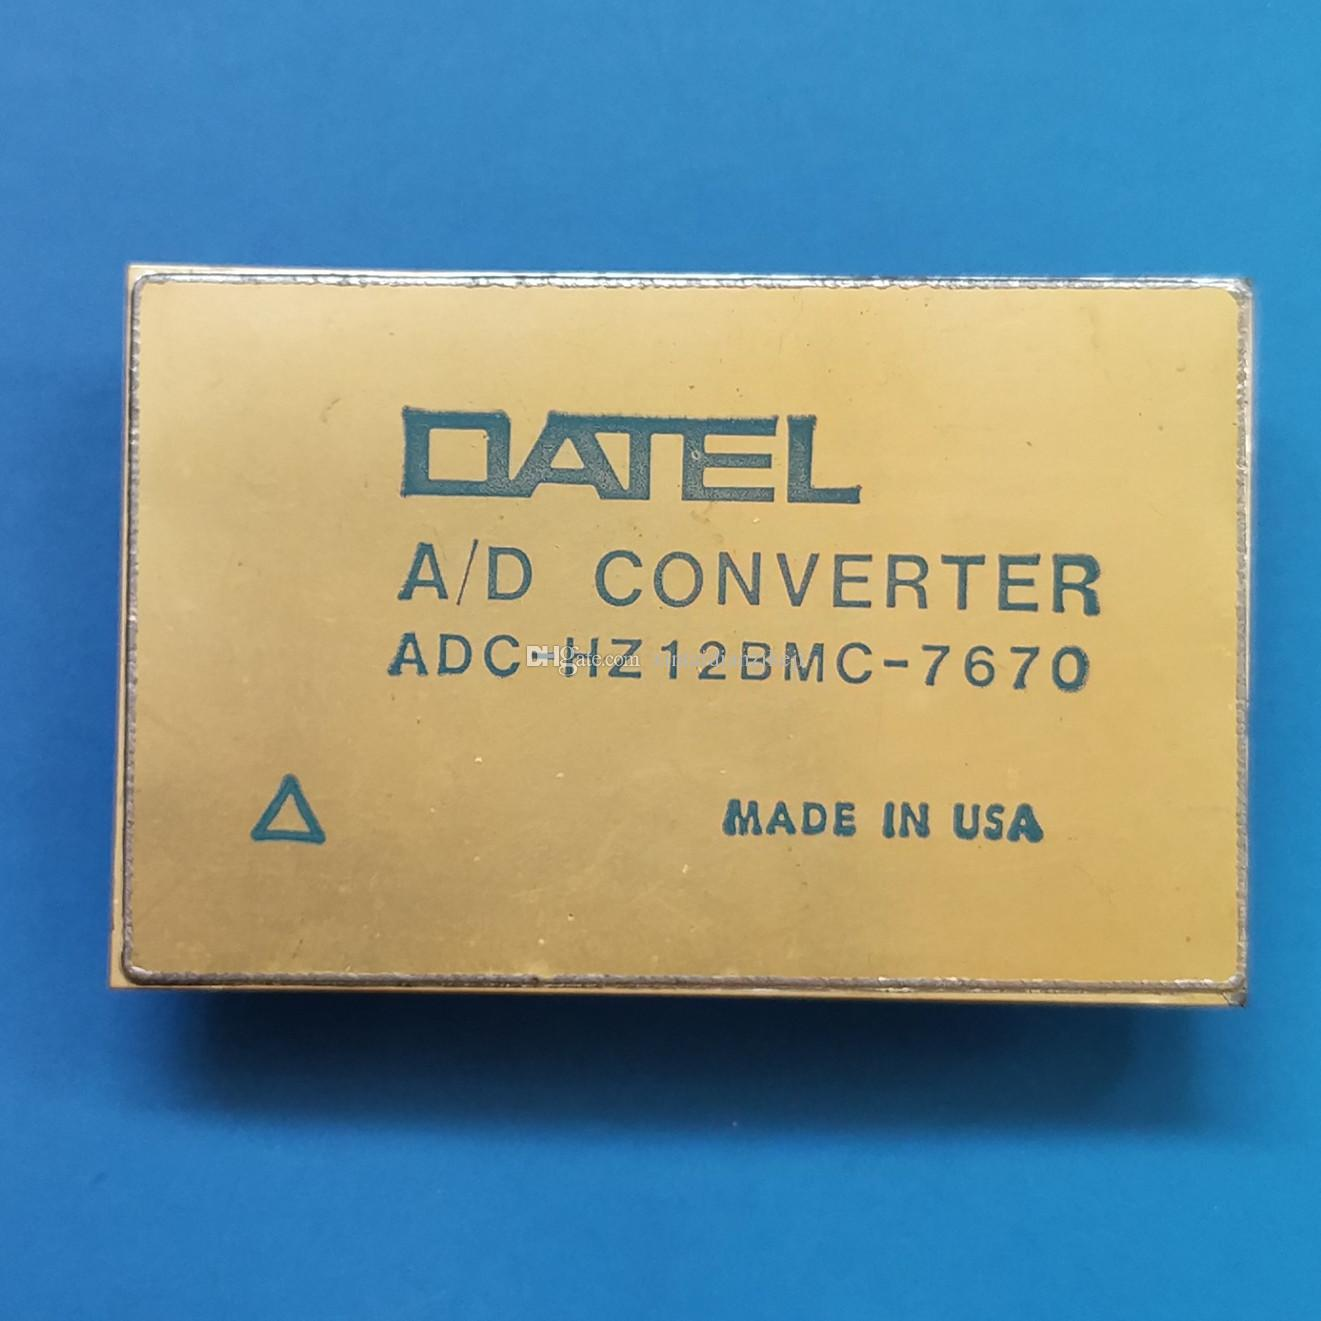 ADC-HZ12BMC ADC-HZ12BMC-7670 CDIP-32 Gold seal chip IC IC quality test is good Good for use